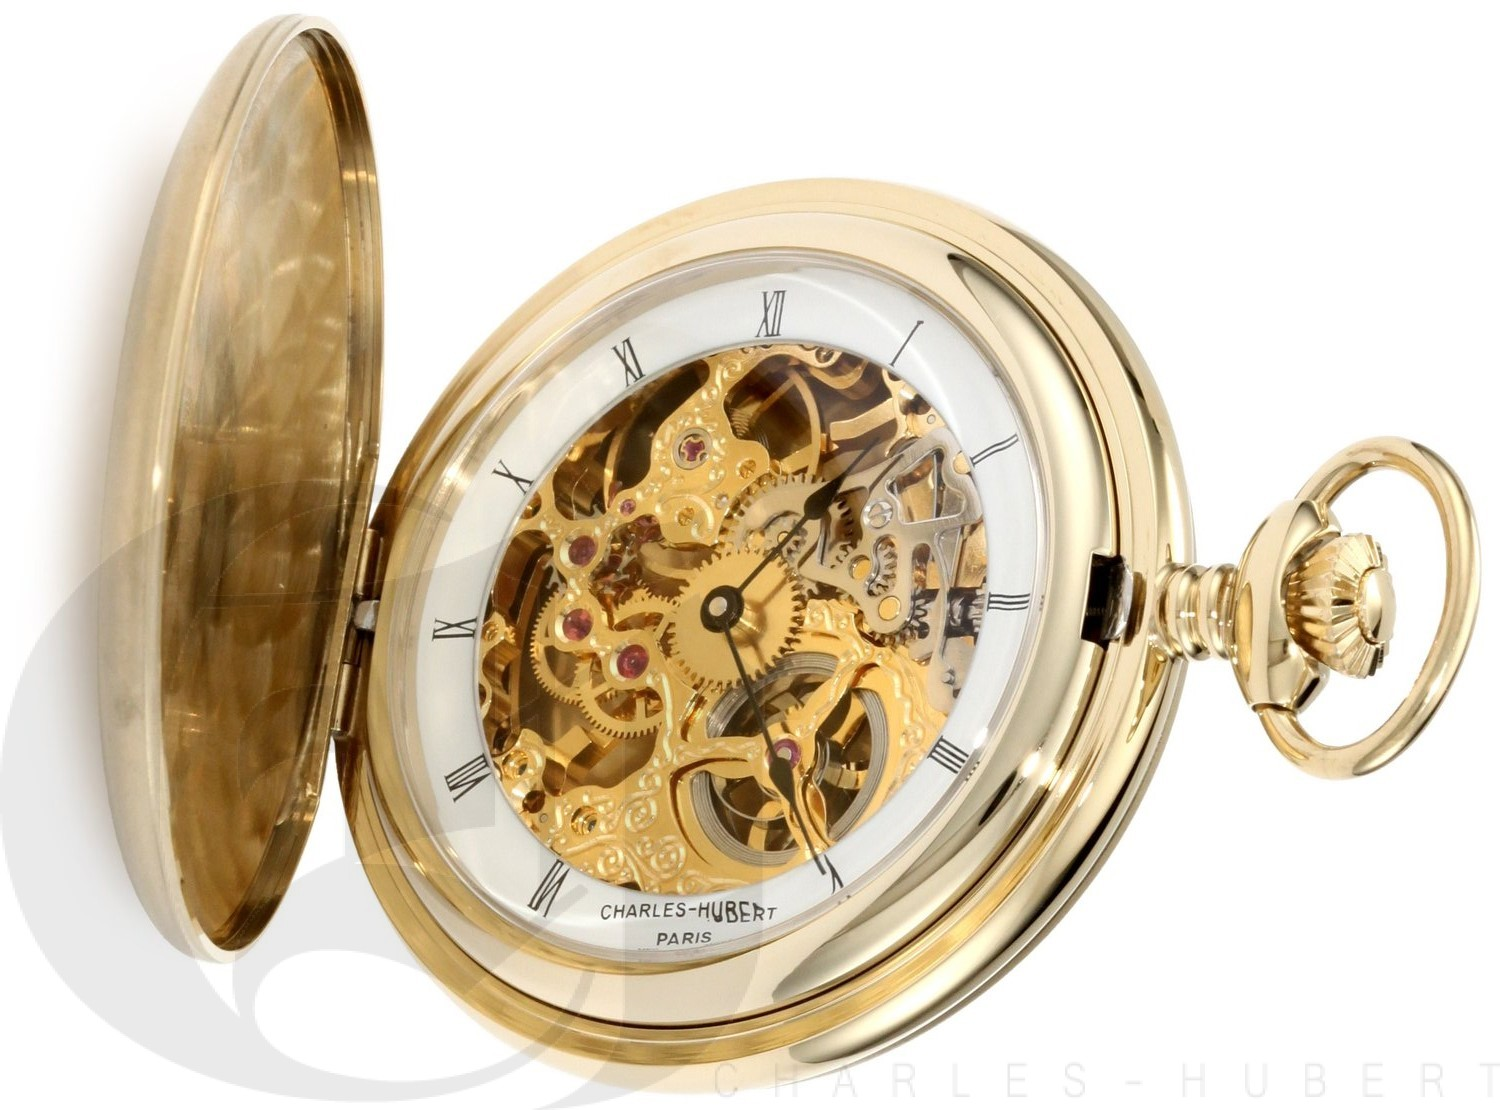 Charles-Hubert Paris Gold-Plated Stainless Steel Satin Finish Hunter Case Mechanical Pocket Watch